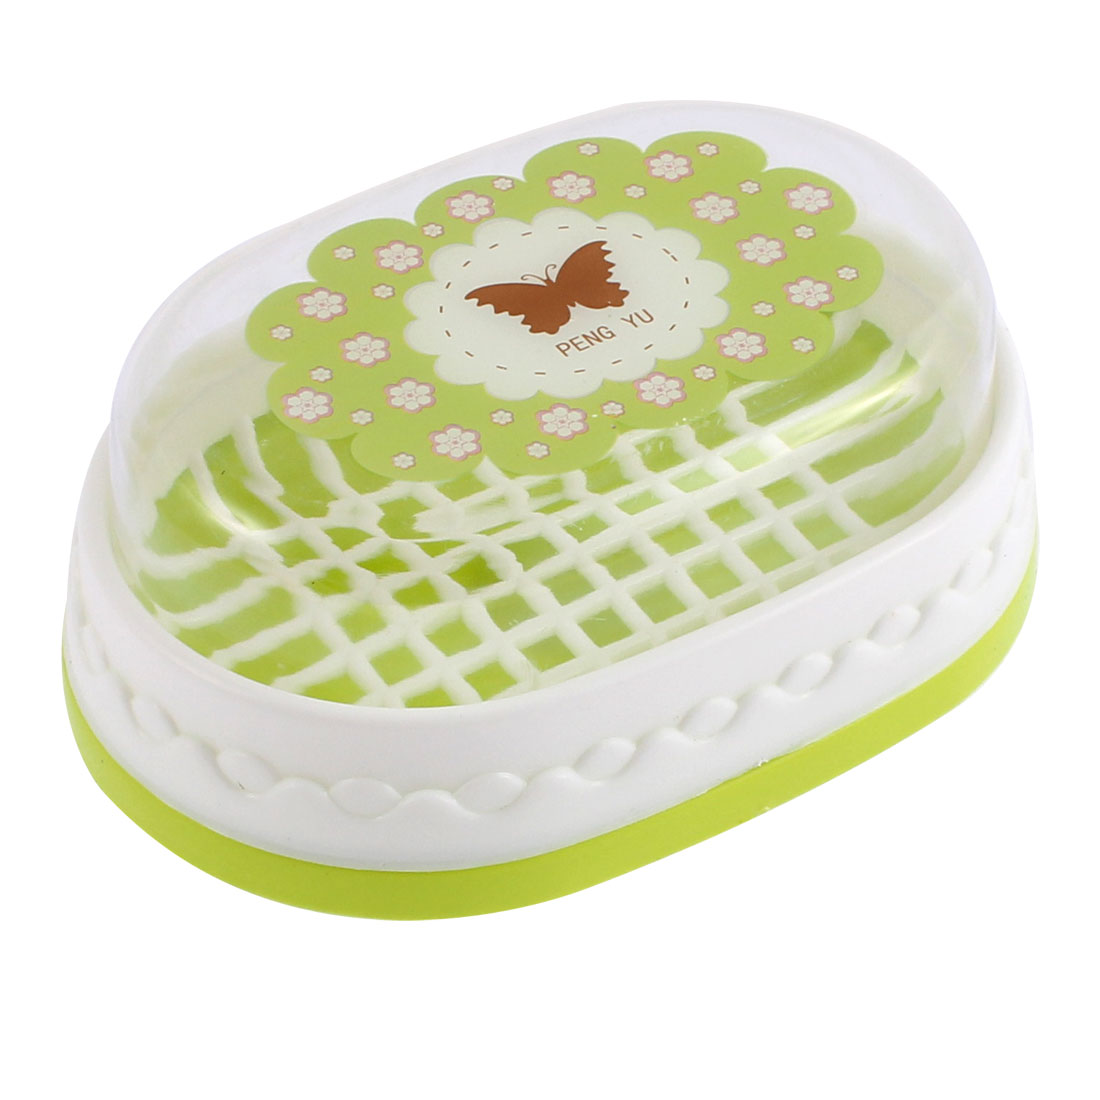 Bathroom Flower Butterfly Printed Soap Dish Case Box Light Green